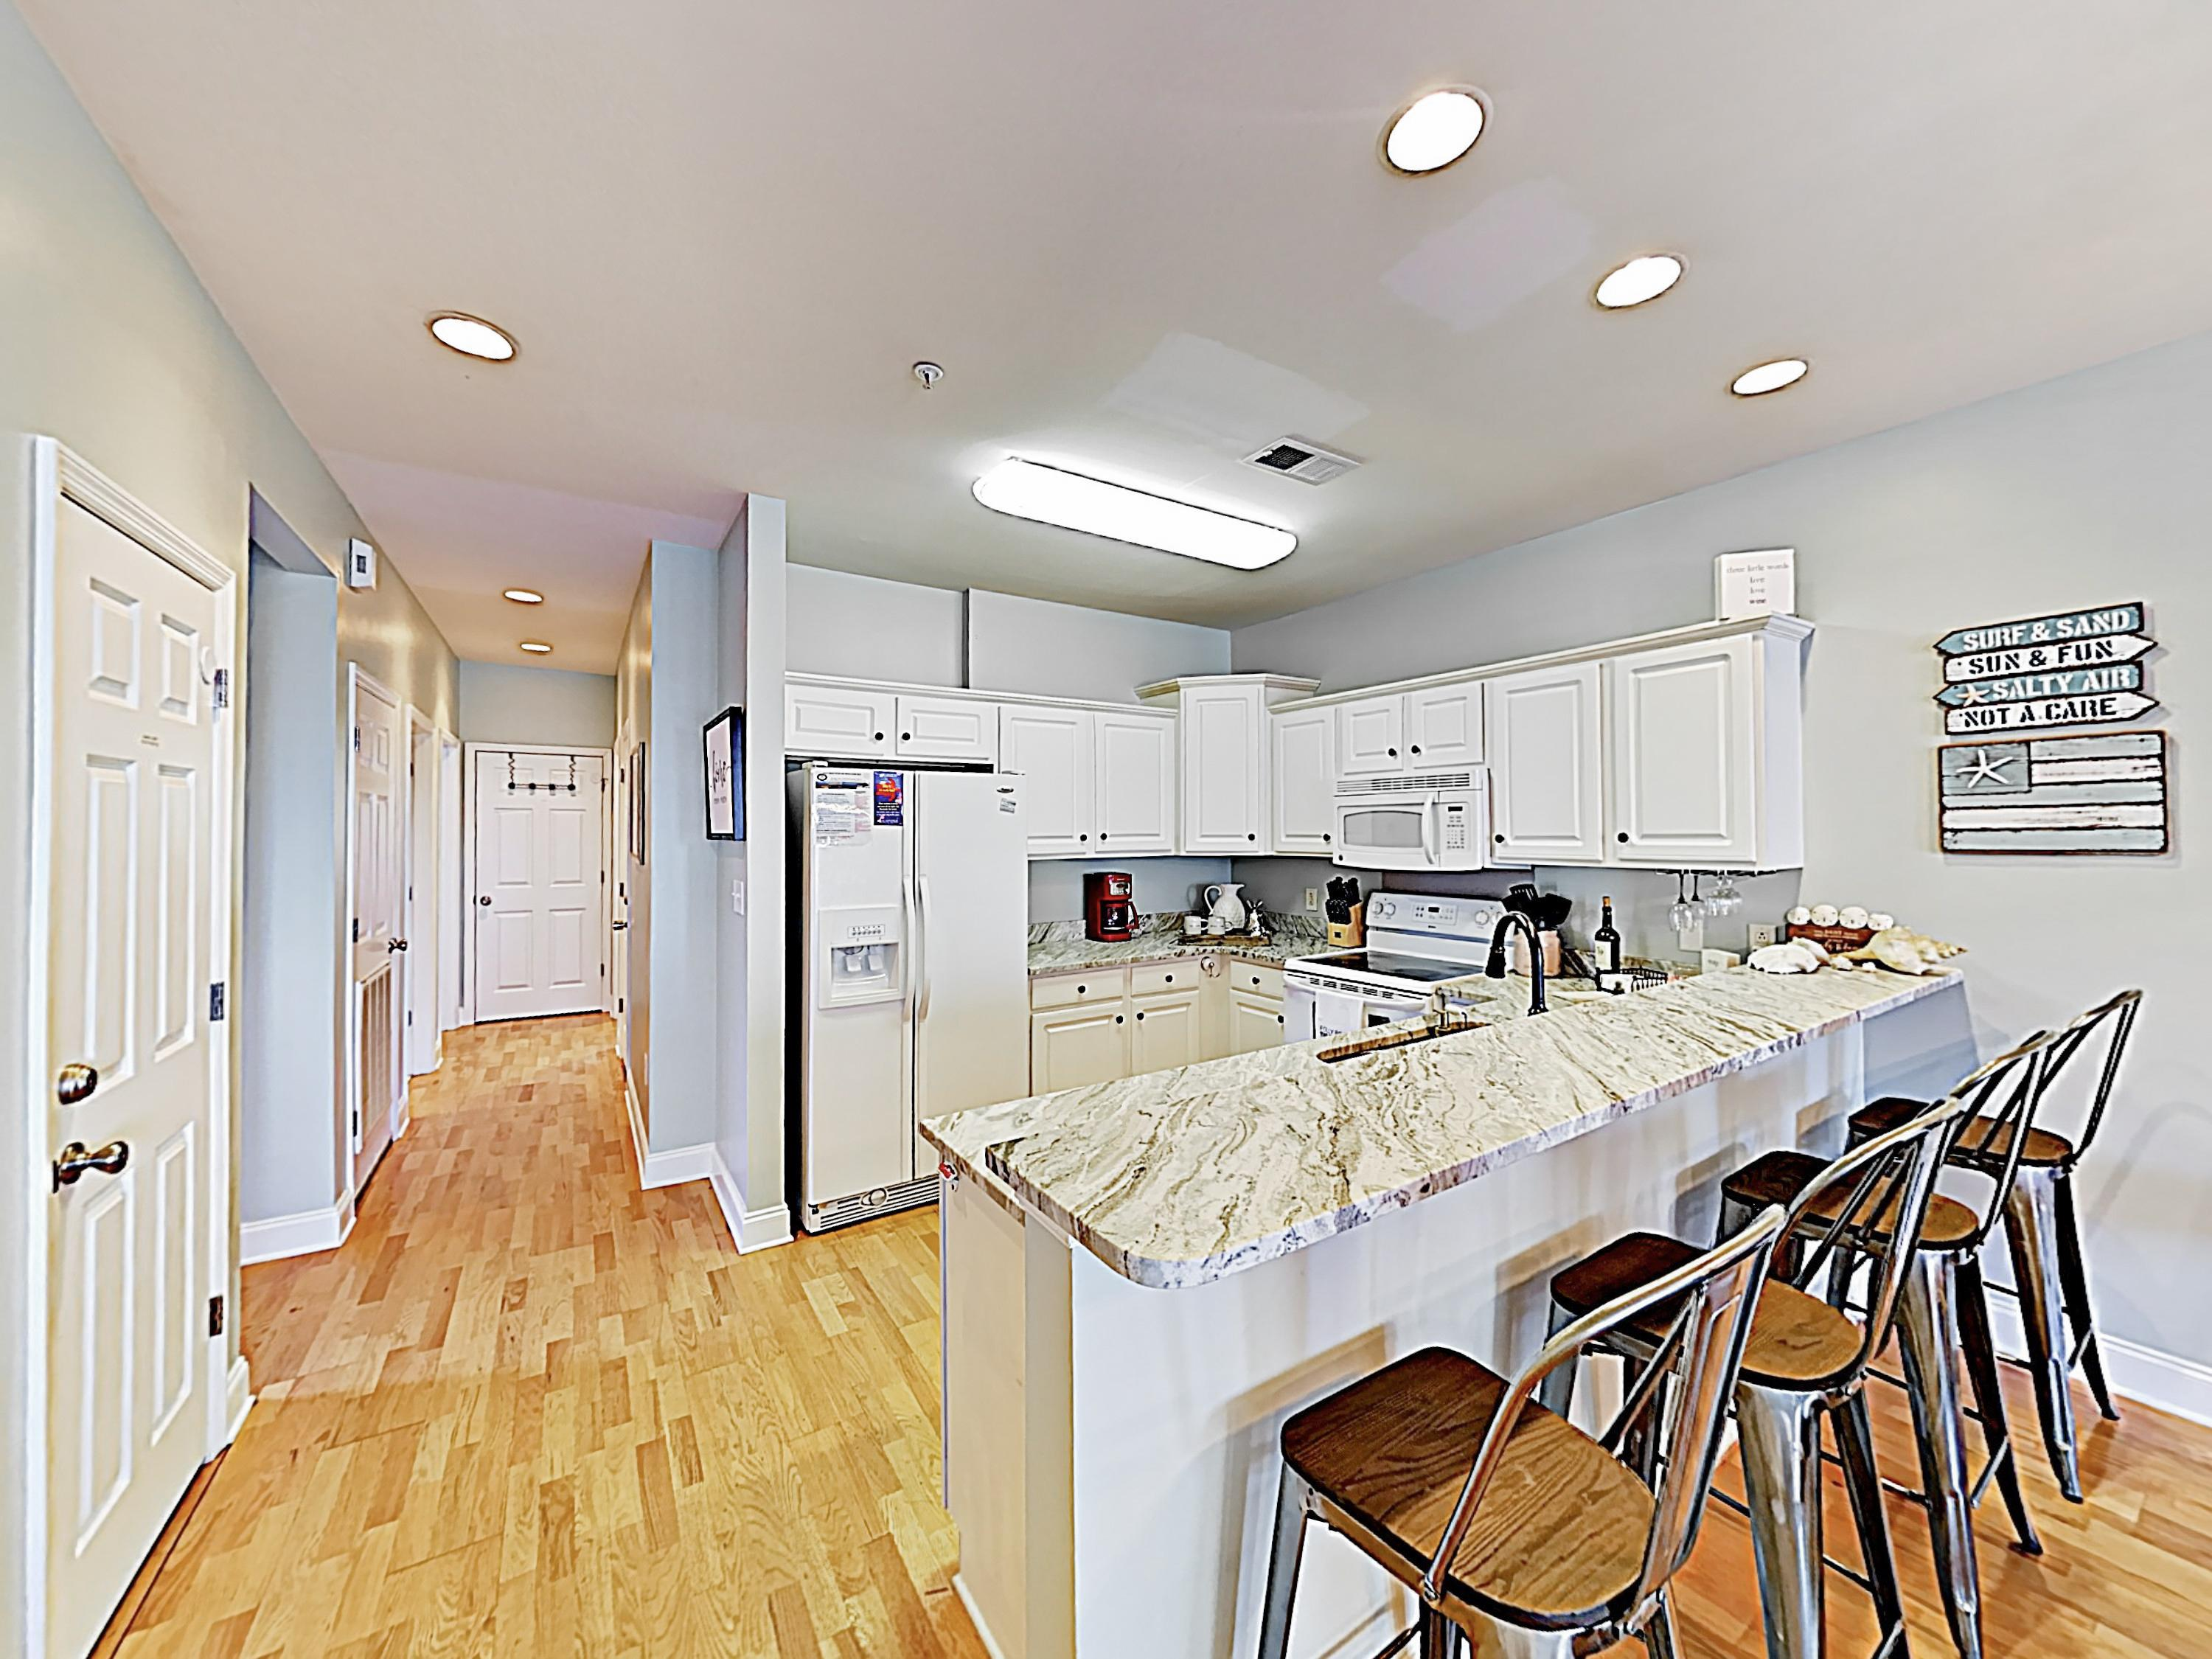 The well-appointed kitchen features a full suite of appliances.